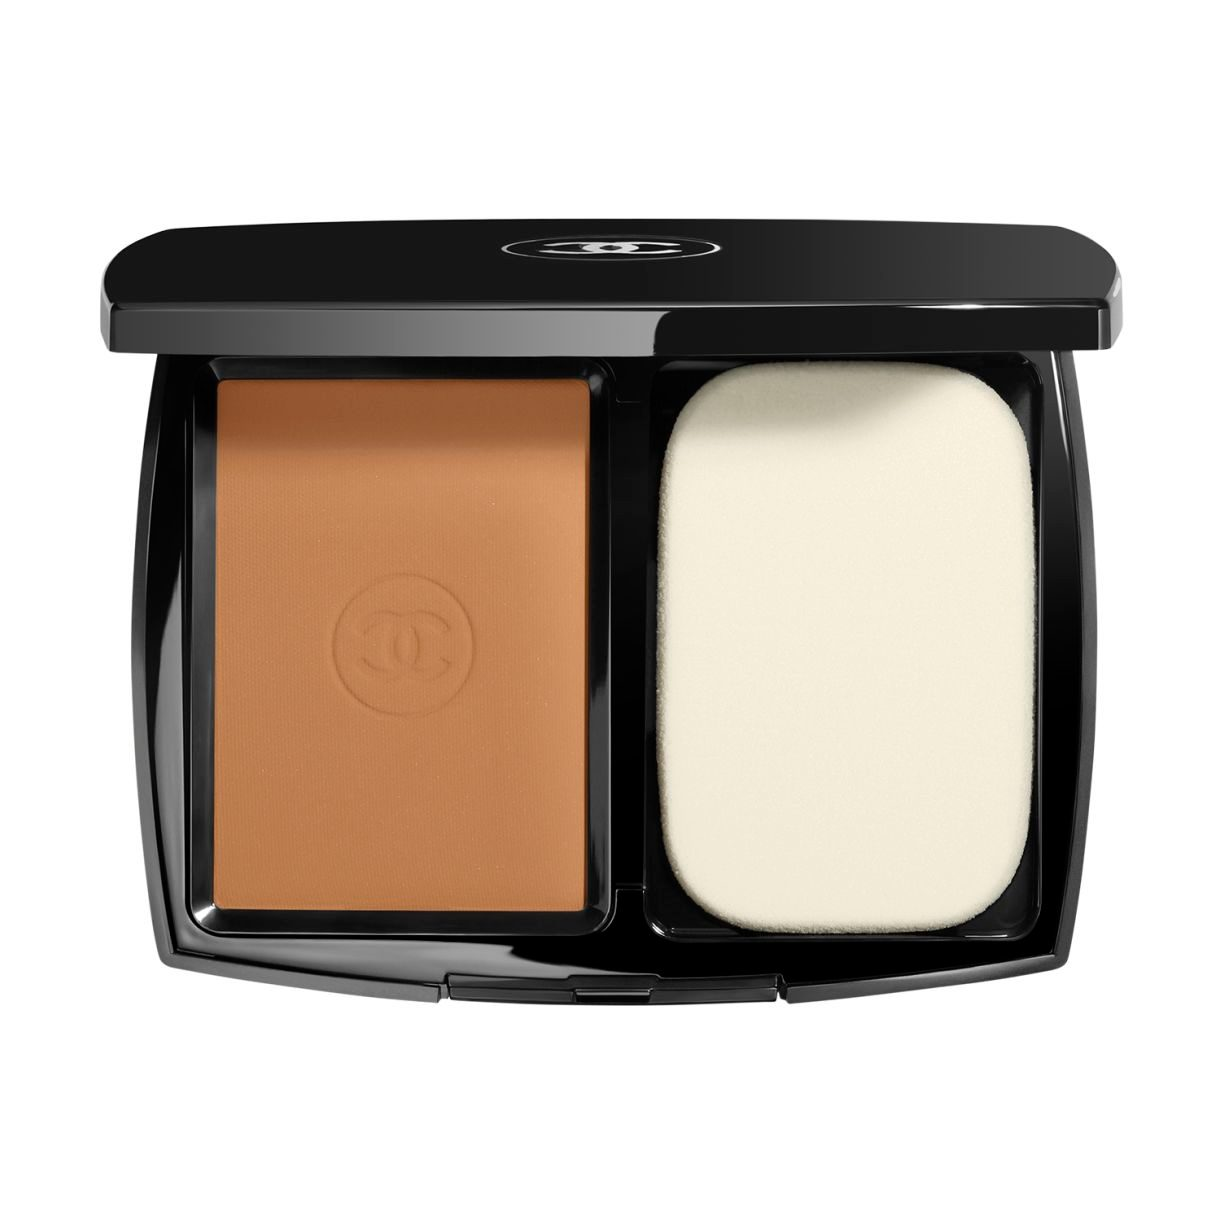 LE TEINT ULTRA TENUE ULTRAWEAR FLAWLESS COMPACT